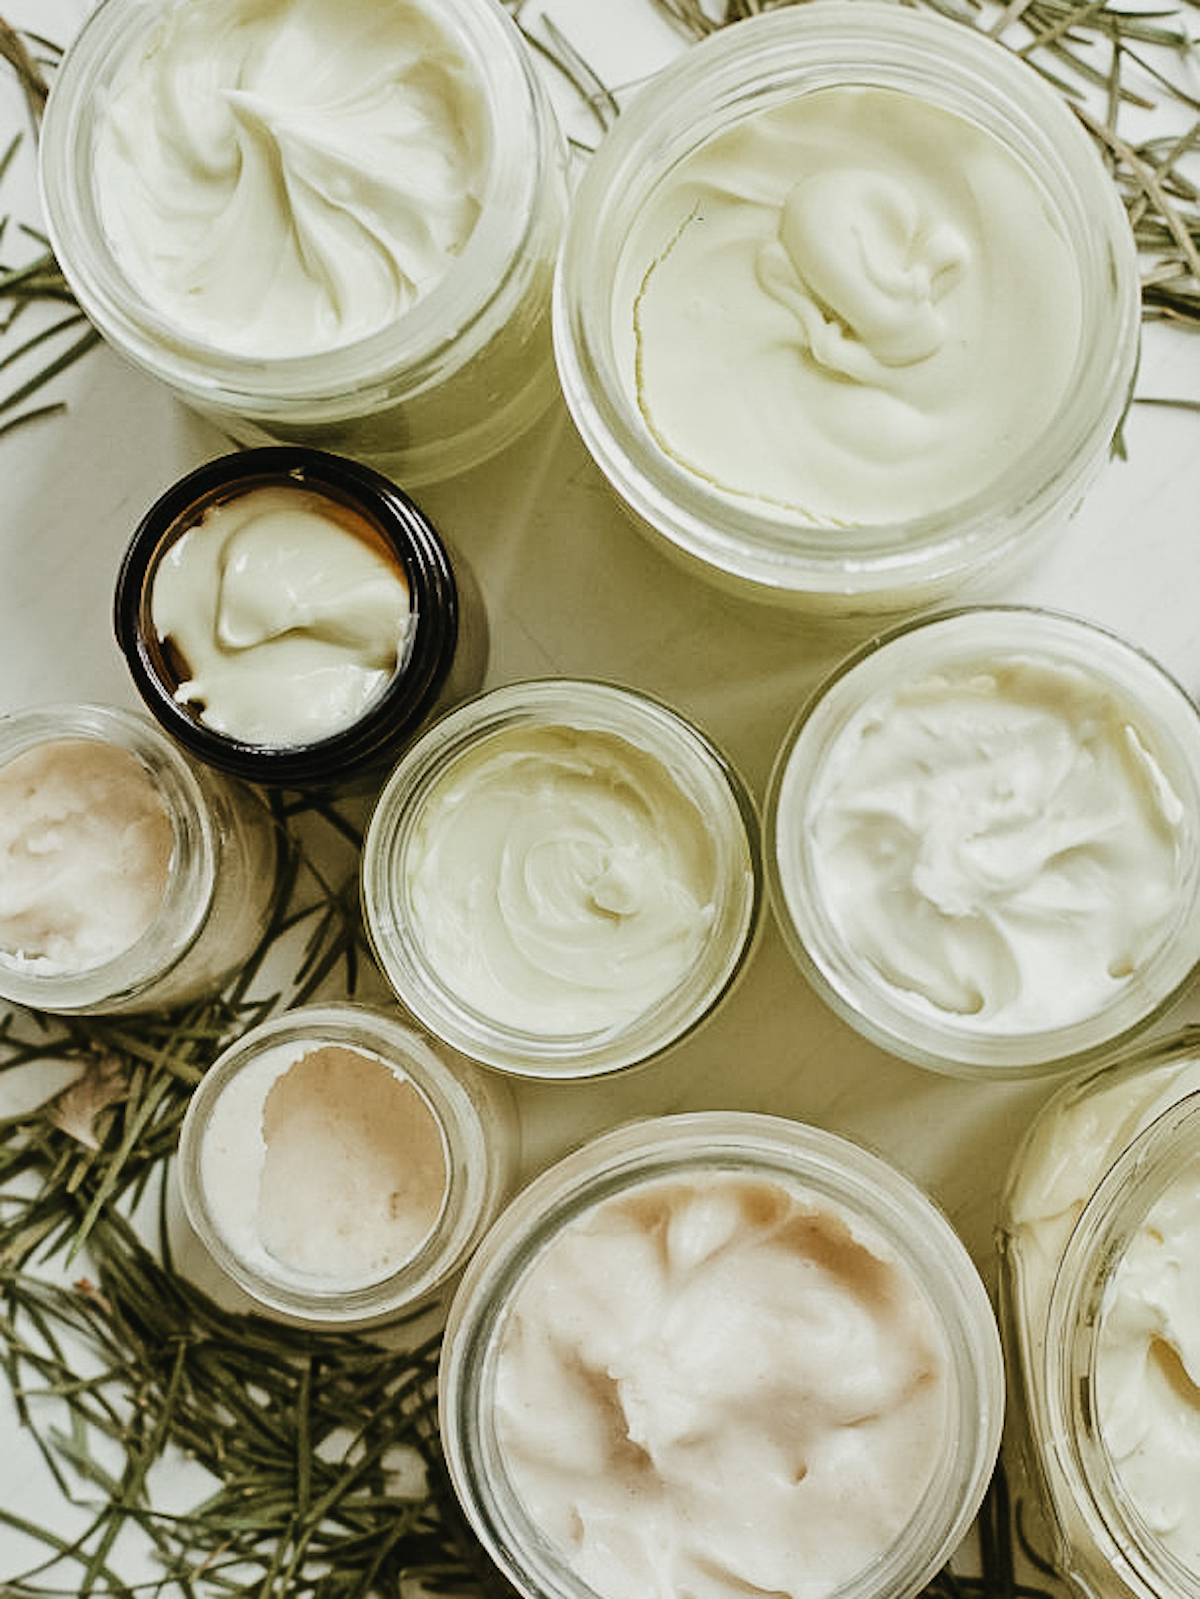 EMULSIFIERS AND PRESERVATIVES IN BOTANICAL SKIN CARE PRODUCTS